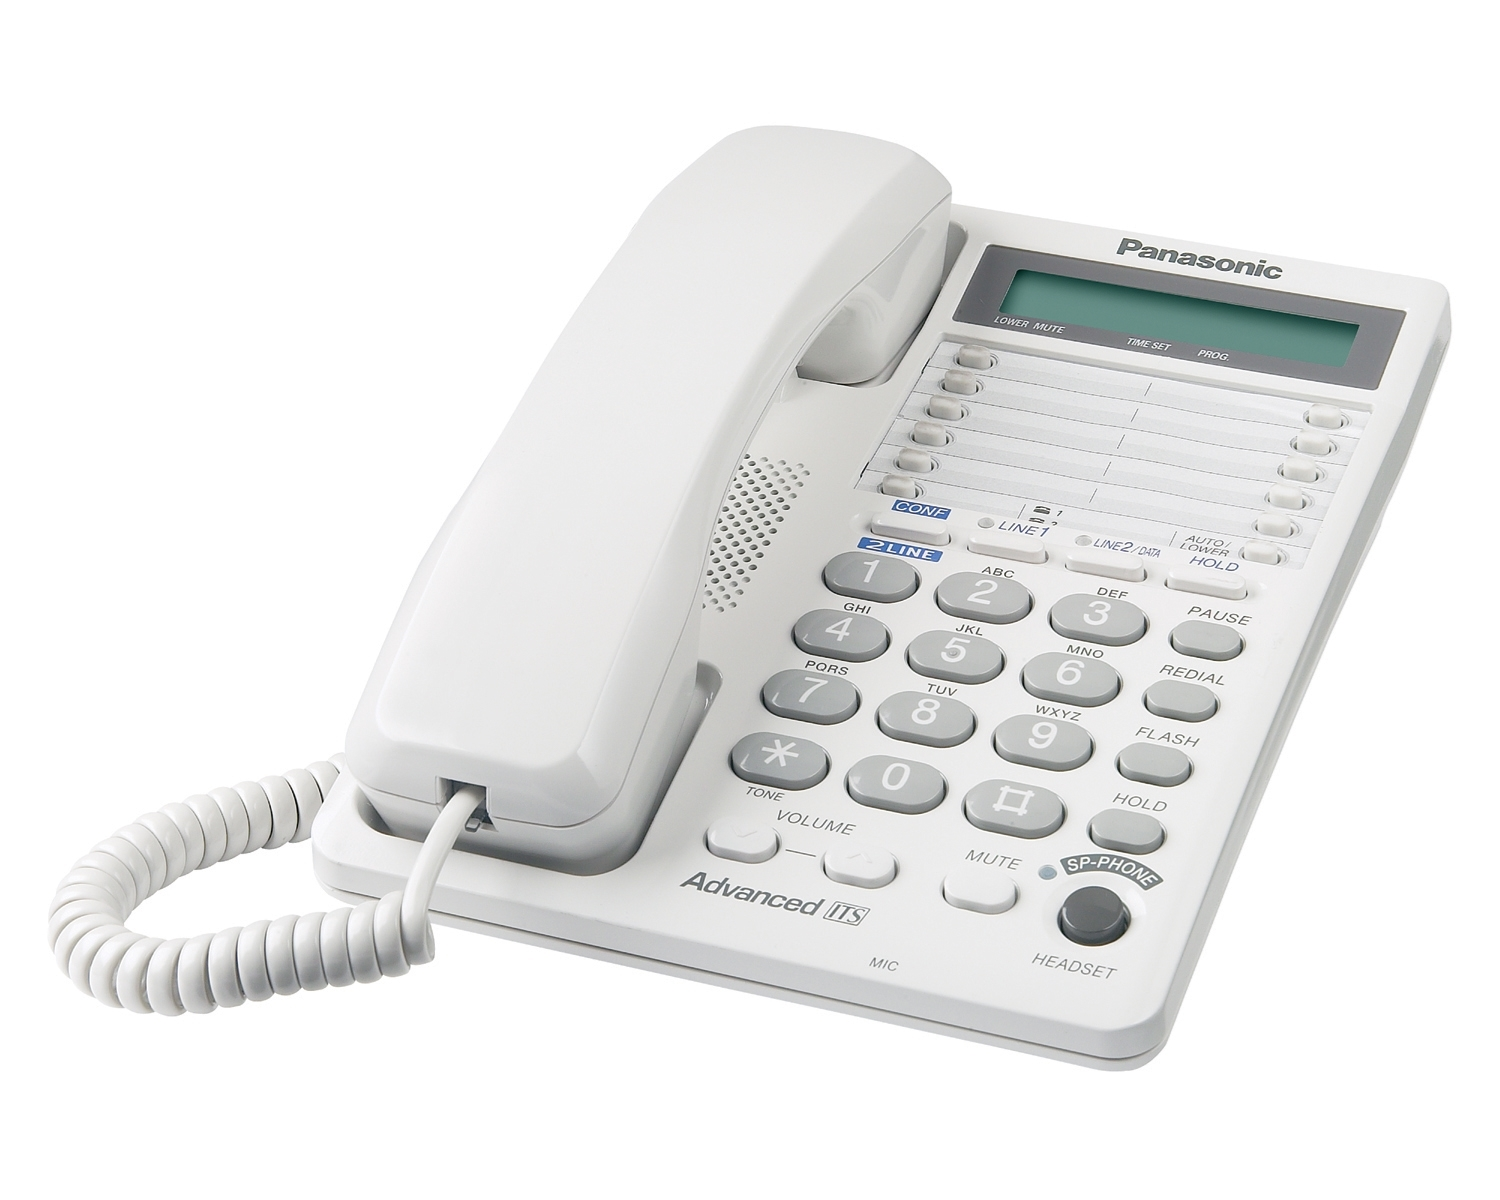 Panasonic Kx Ts208w 2 Line Analog Corded Phone With Lcd